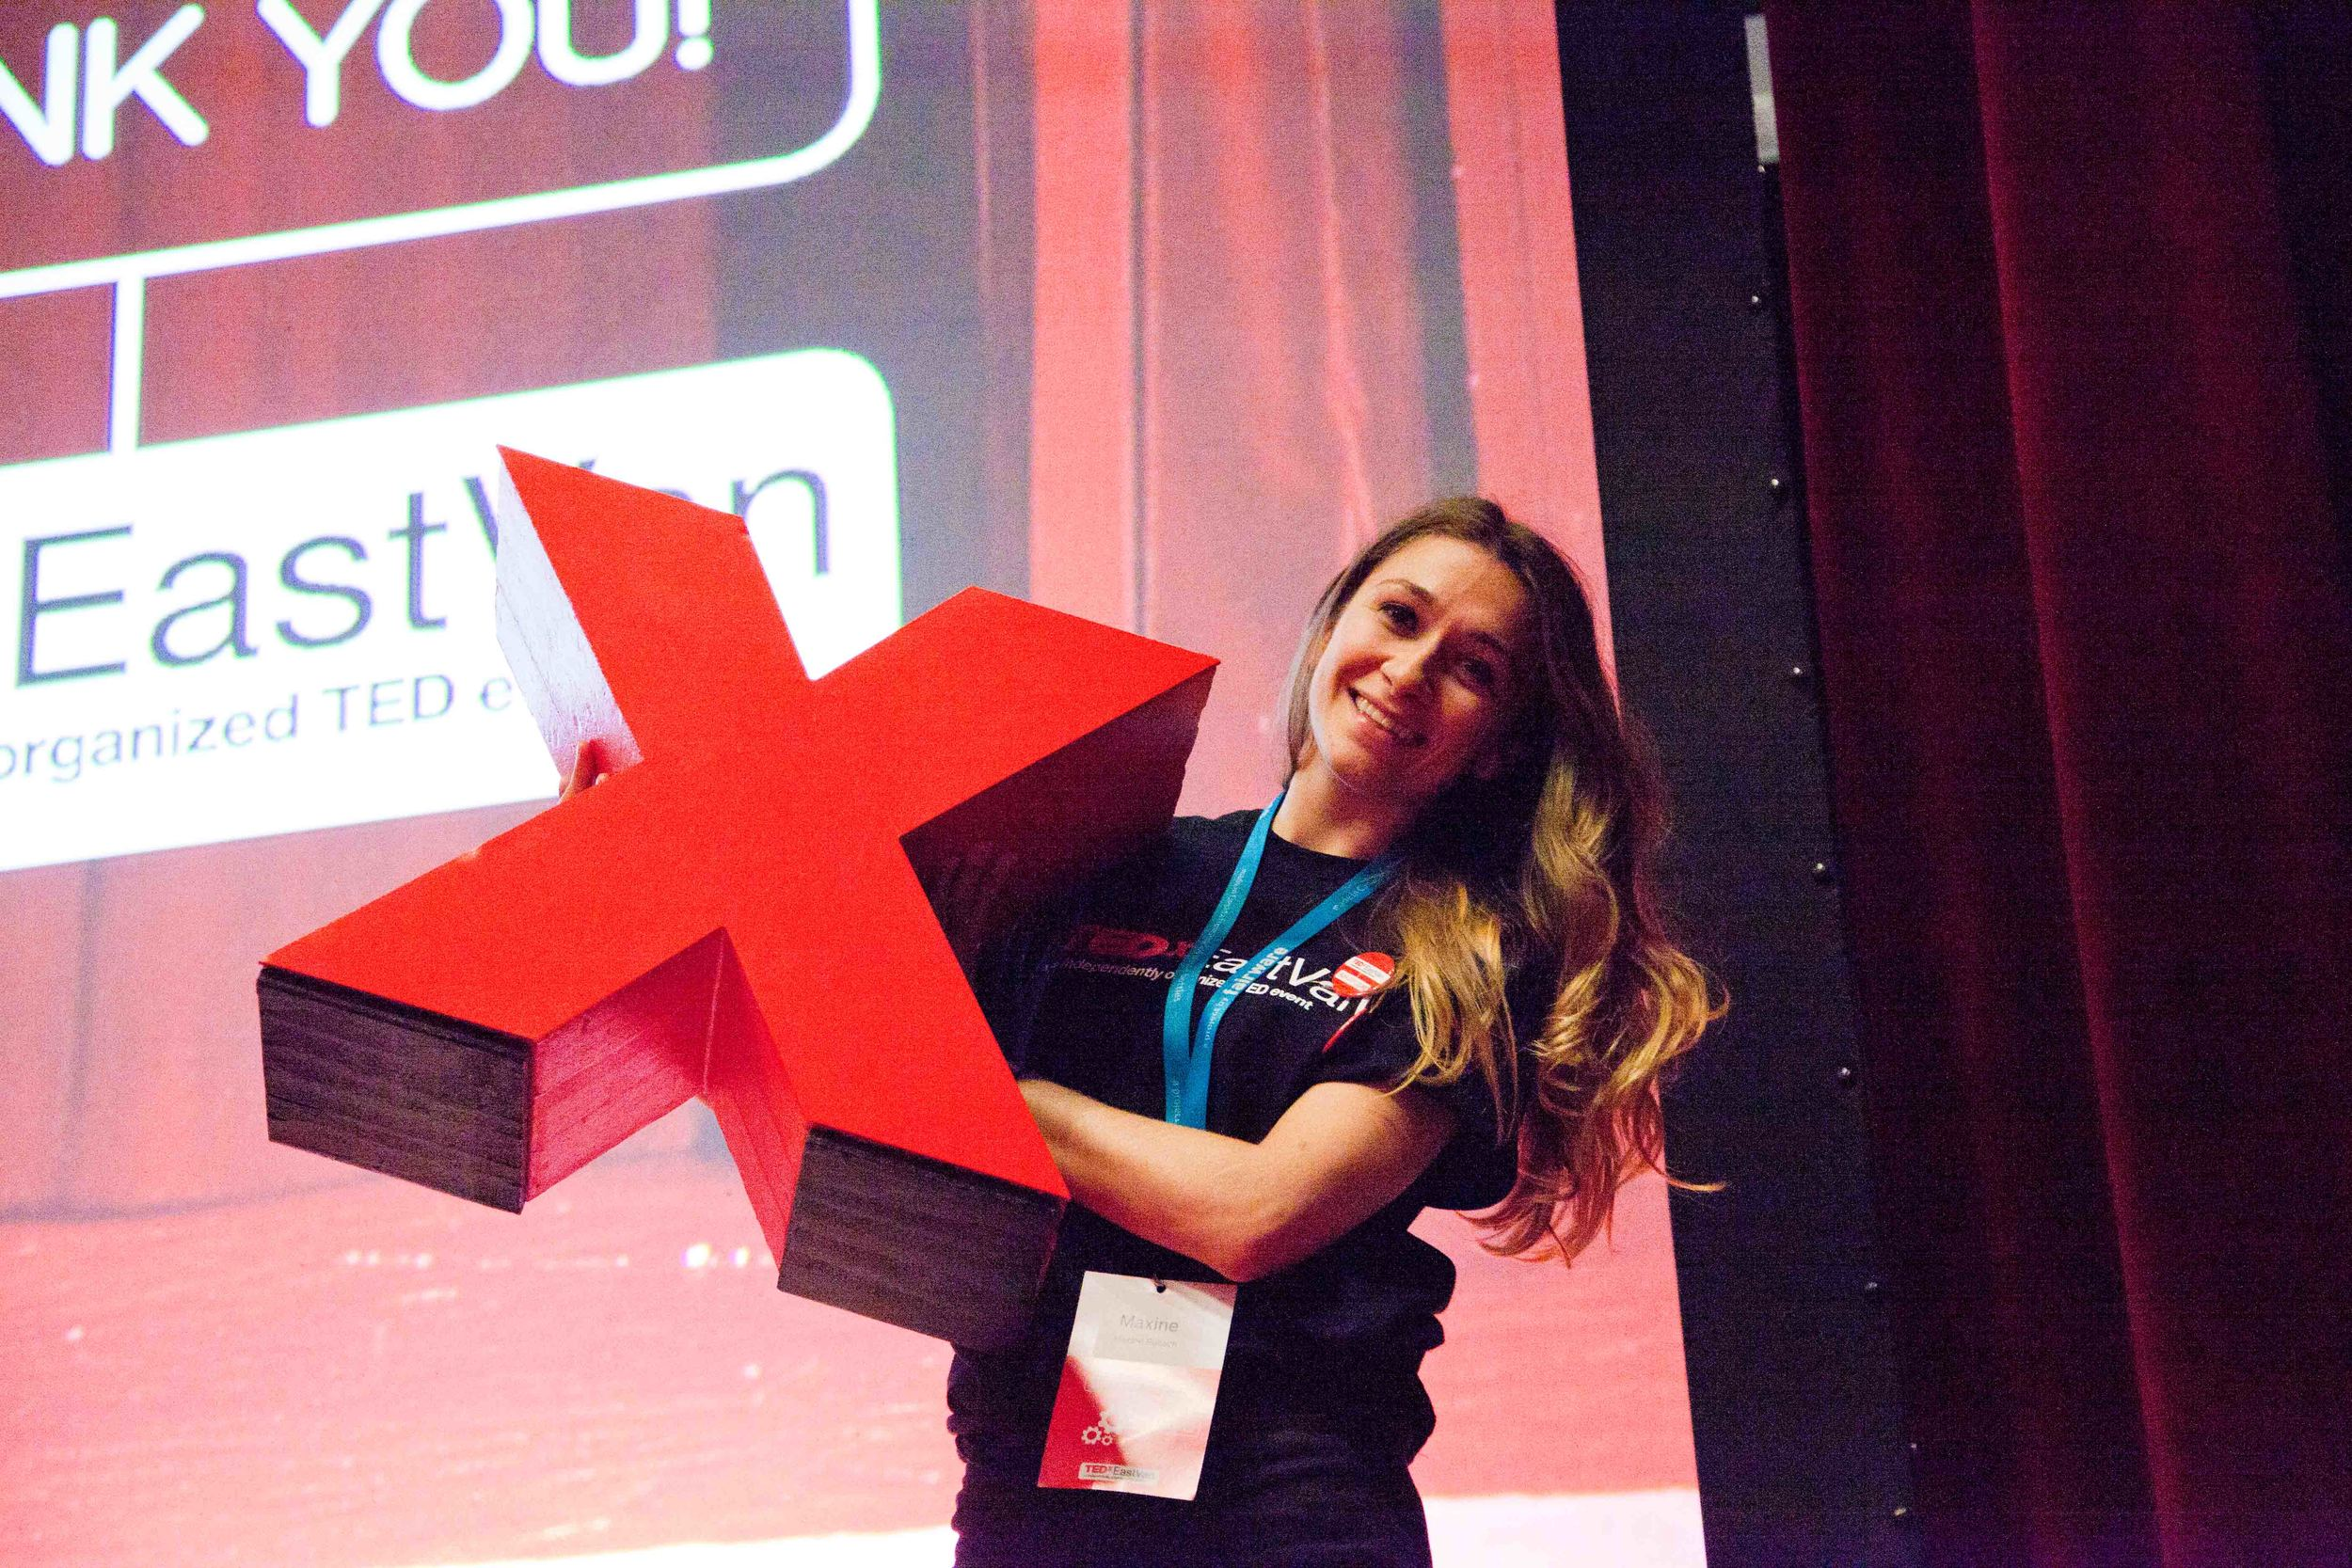 Me holding the famous X!